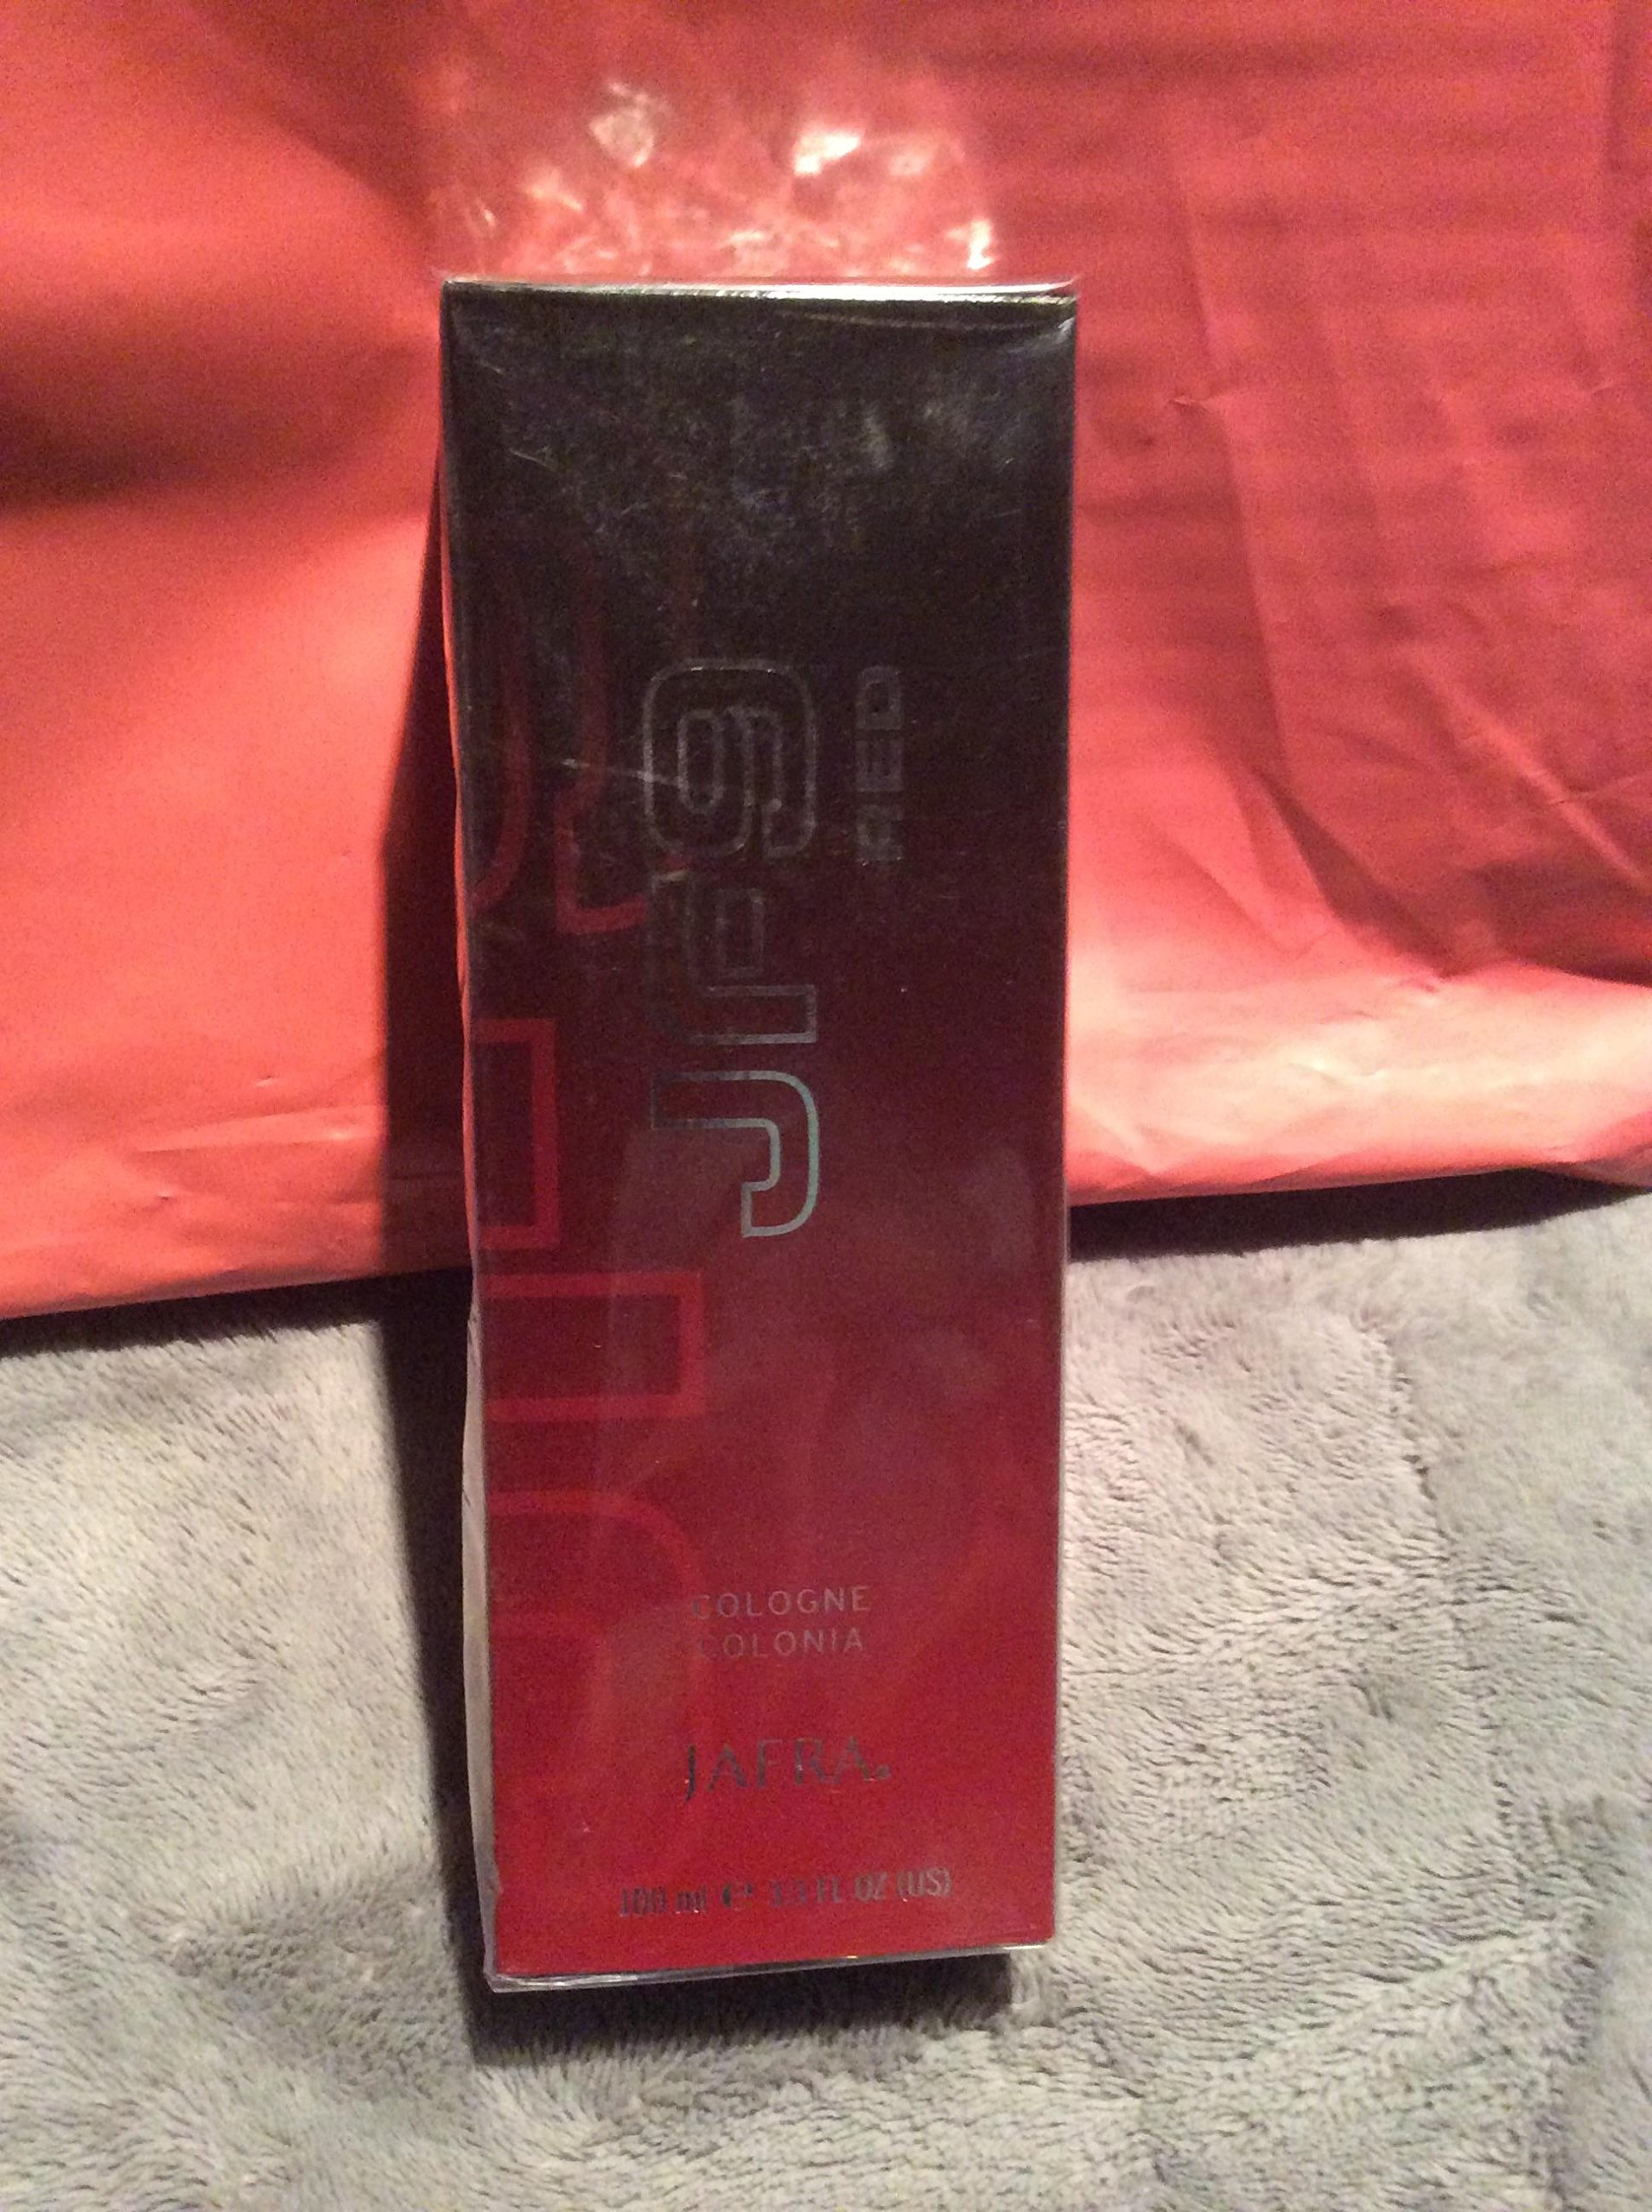 Jafra JF9 RED Cologne 3.3 fl. oz.